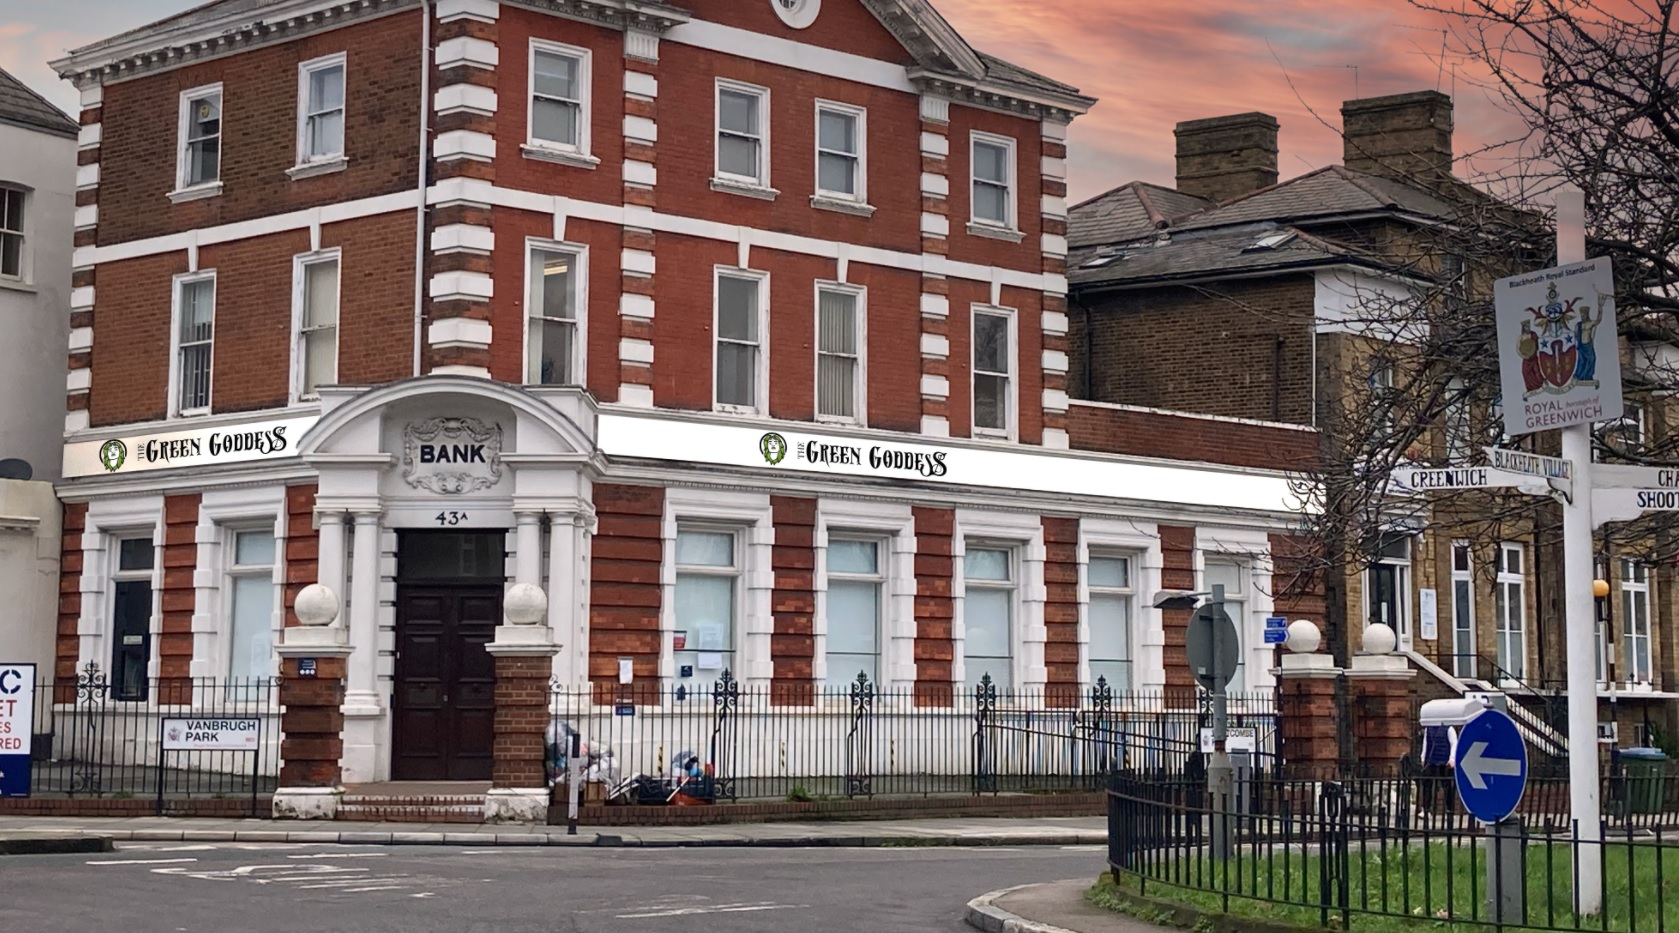 Plans in for new pub & brewery at former Blackheath Barclays bank